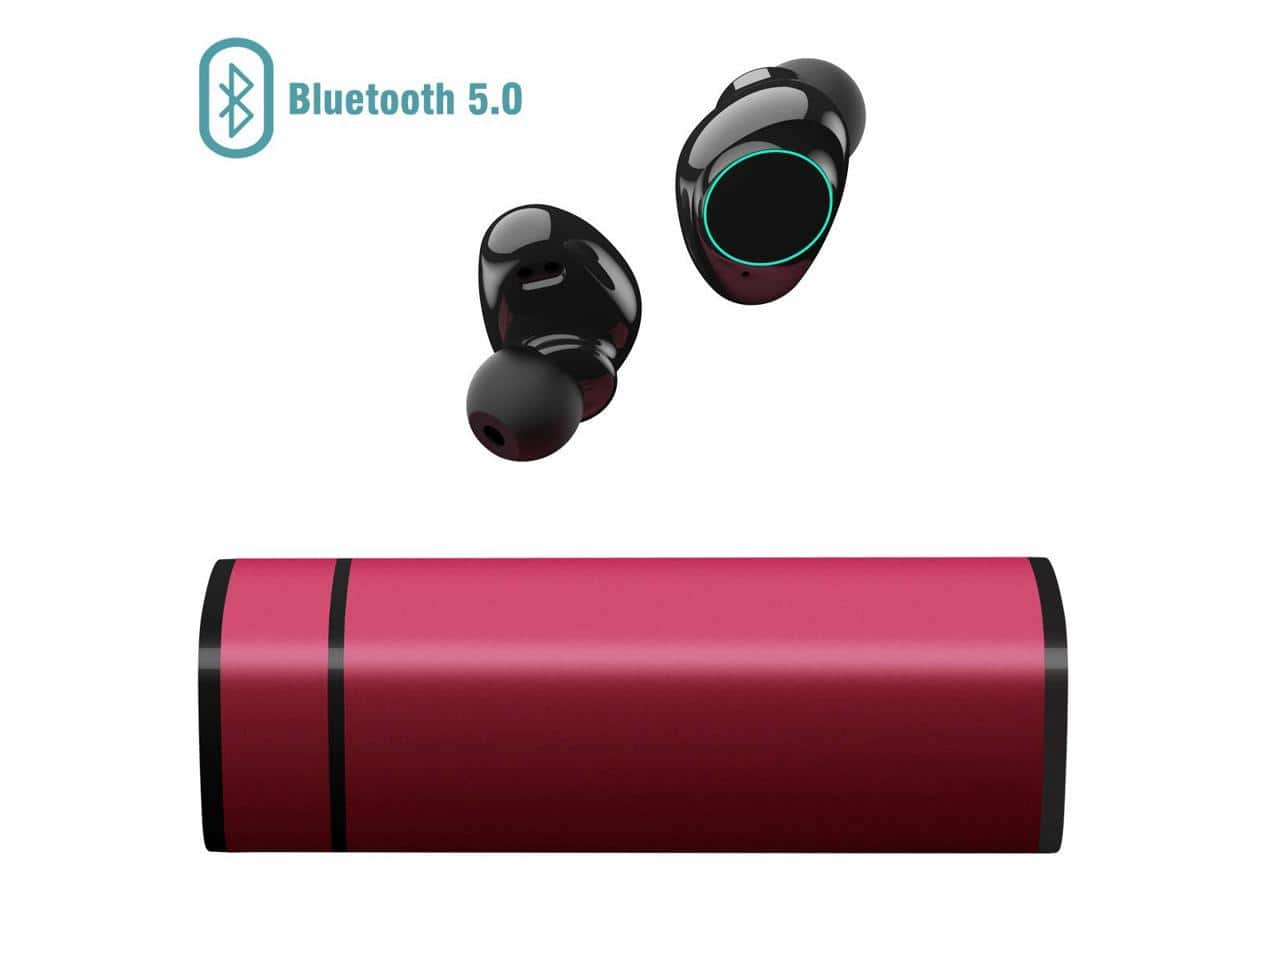 Muzili Sports Series y9-tarnish Smallest In-Ear Bluetooth Earbuds Noise Cancelling Headset with Charging Box - $14.99 + FS